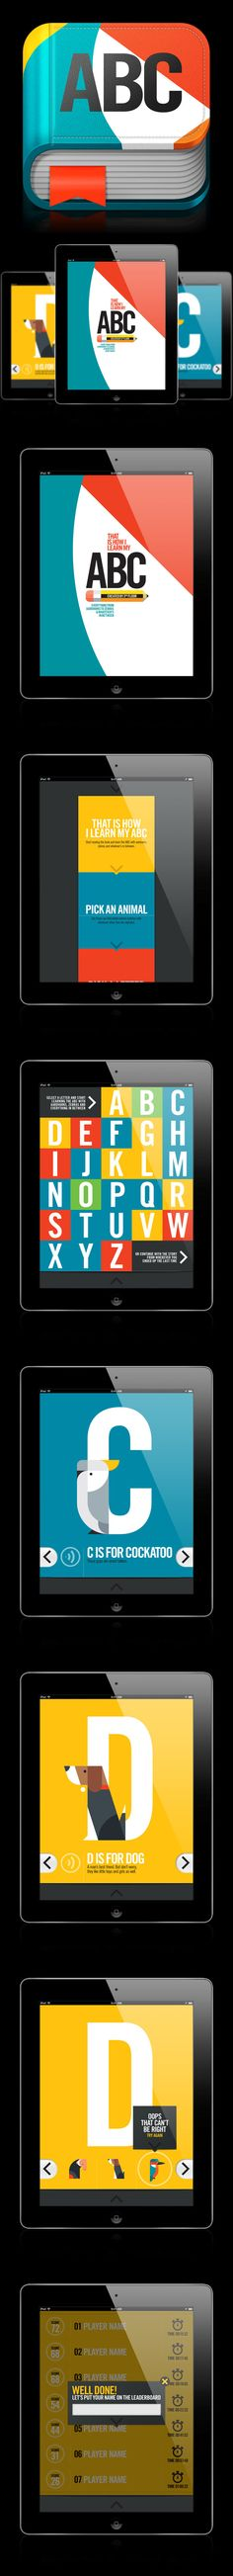 ABC #iPad #App by Bart De Keyzer, via #Behance #Tablet #Mobile